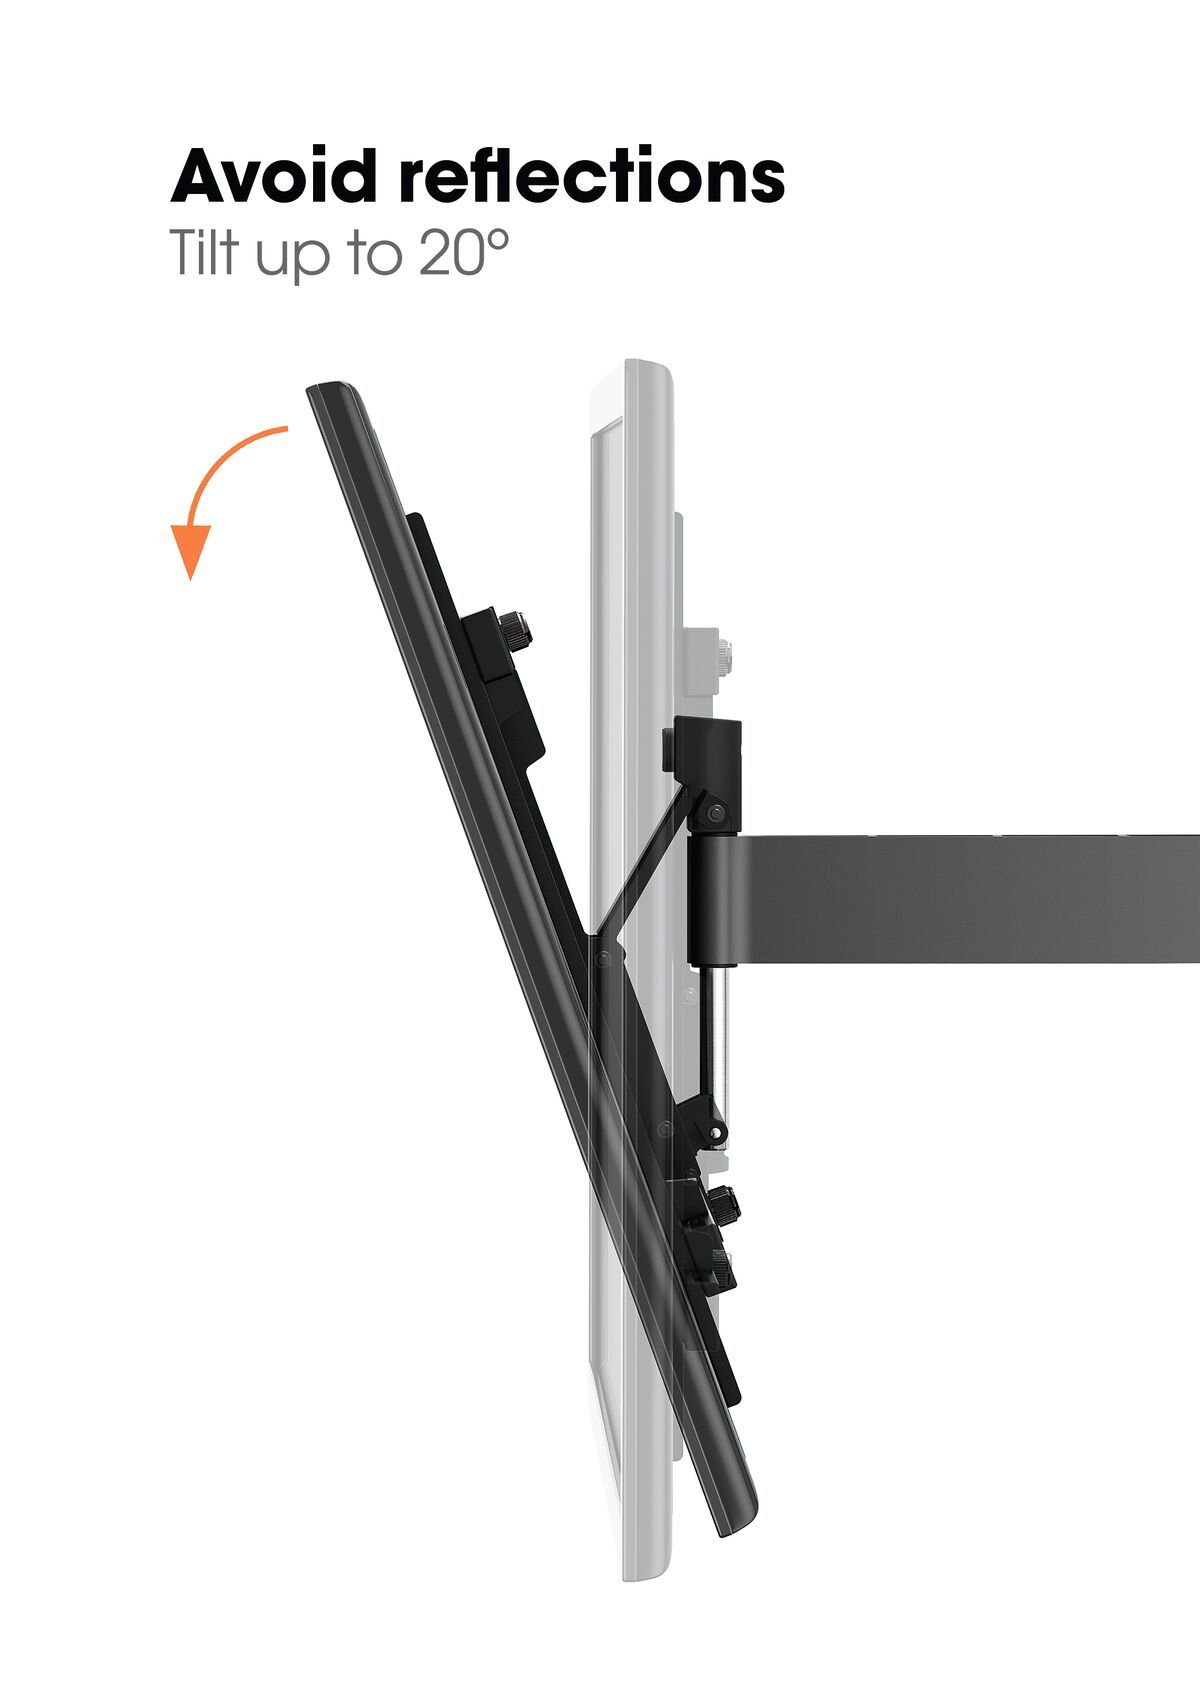 Vogel's WALL 3345 Full-Motion TV Wall Mount (black) - Suitable for 40 up to 65 inch TVs - Full motion (up to 180°) - Tilt up to 20° - USP